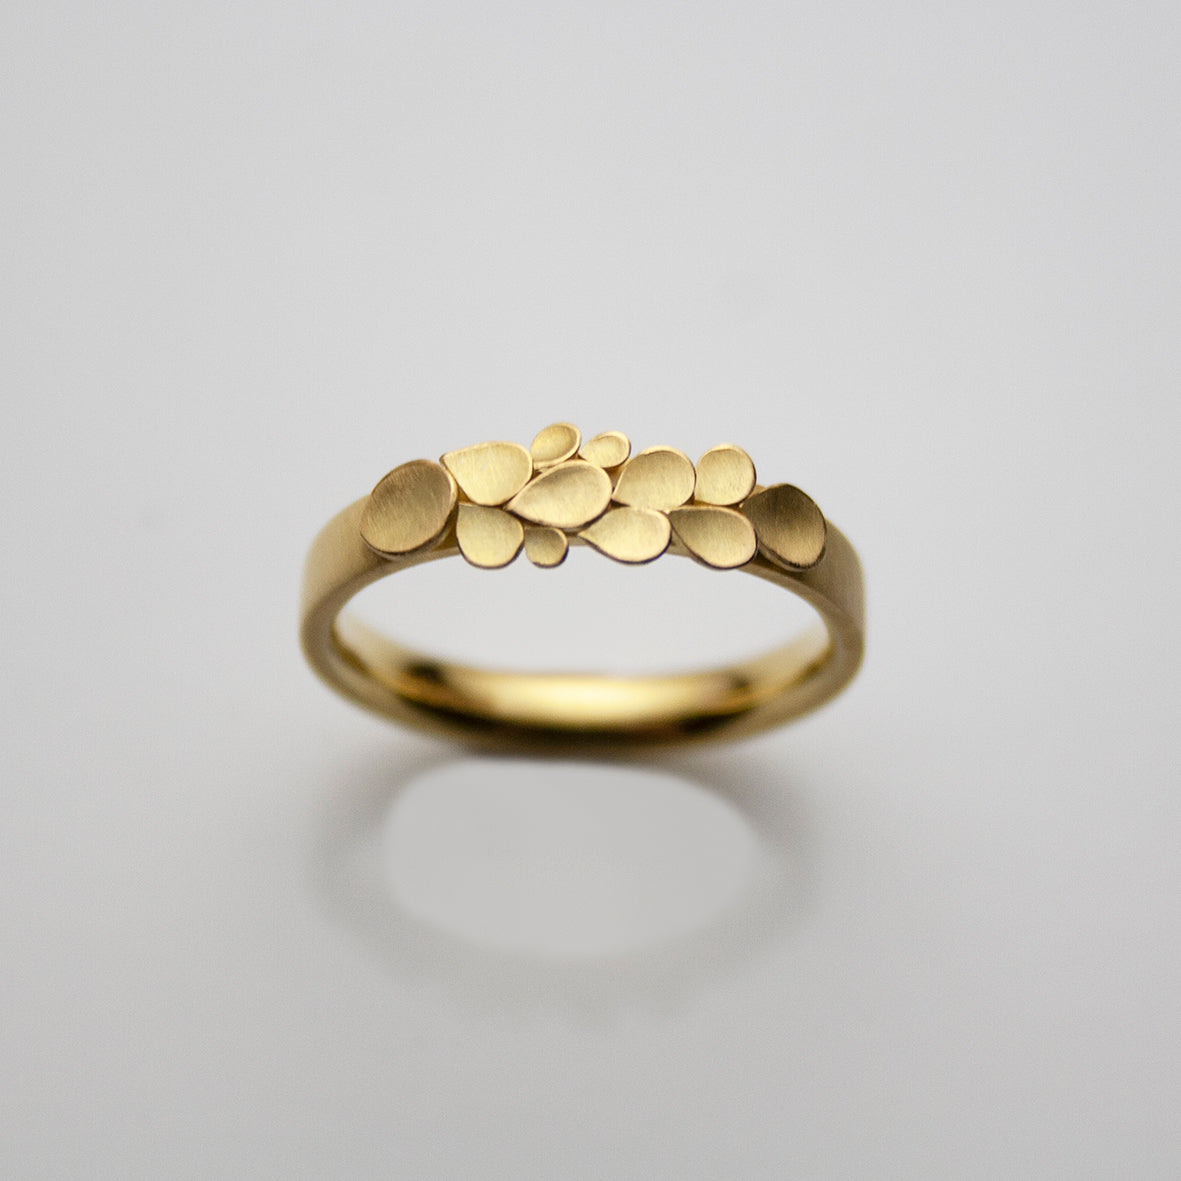 Dahlia 18ct. Gold 3.2mm D Ring